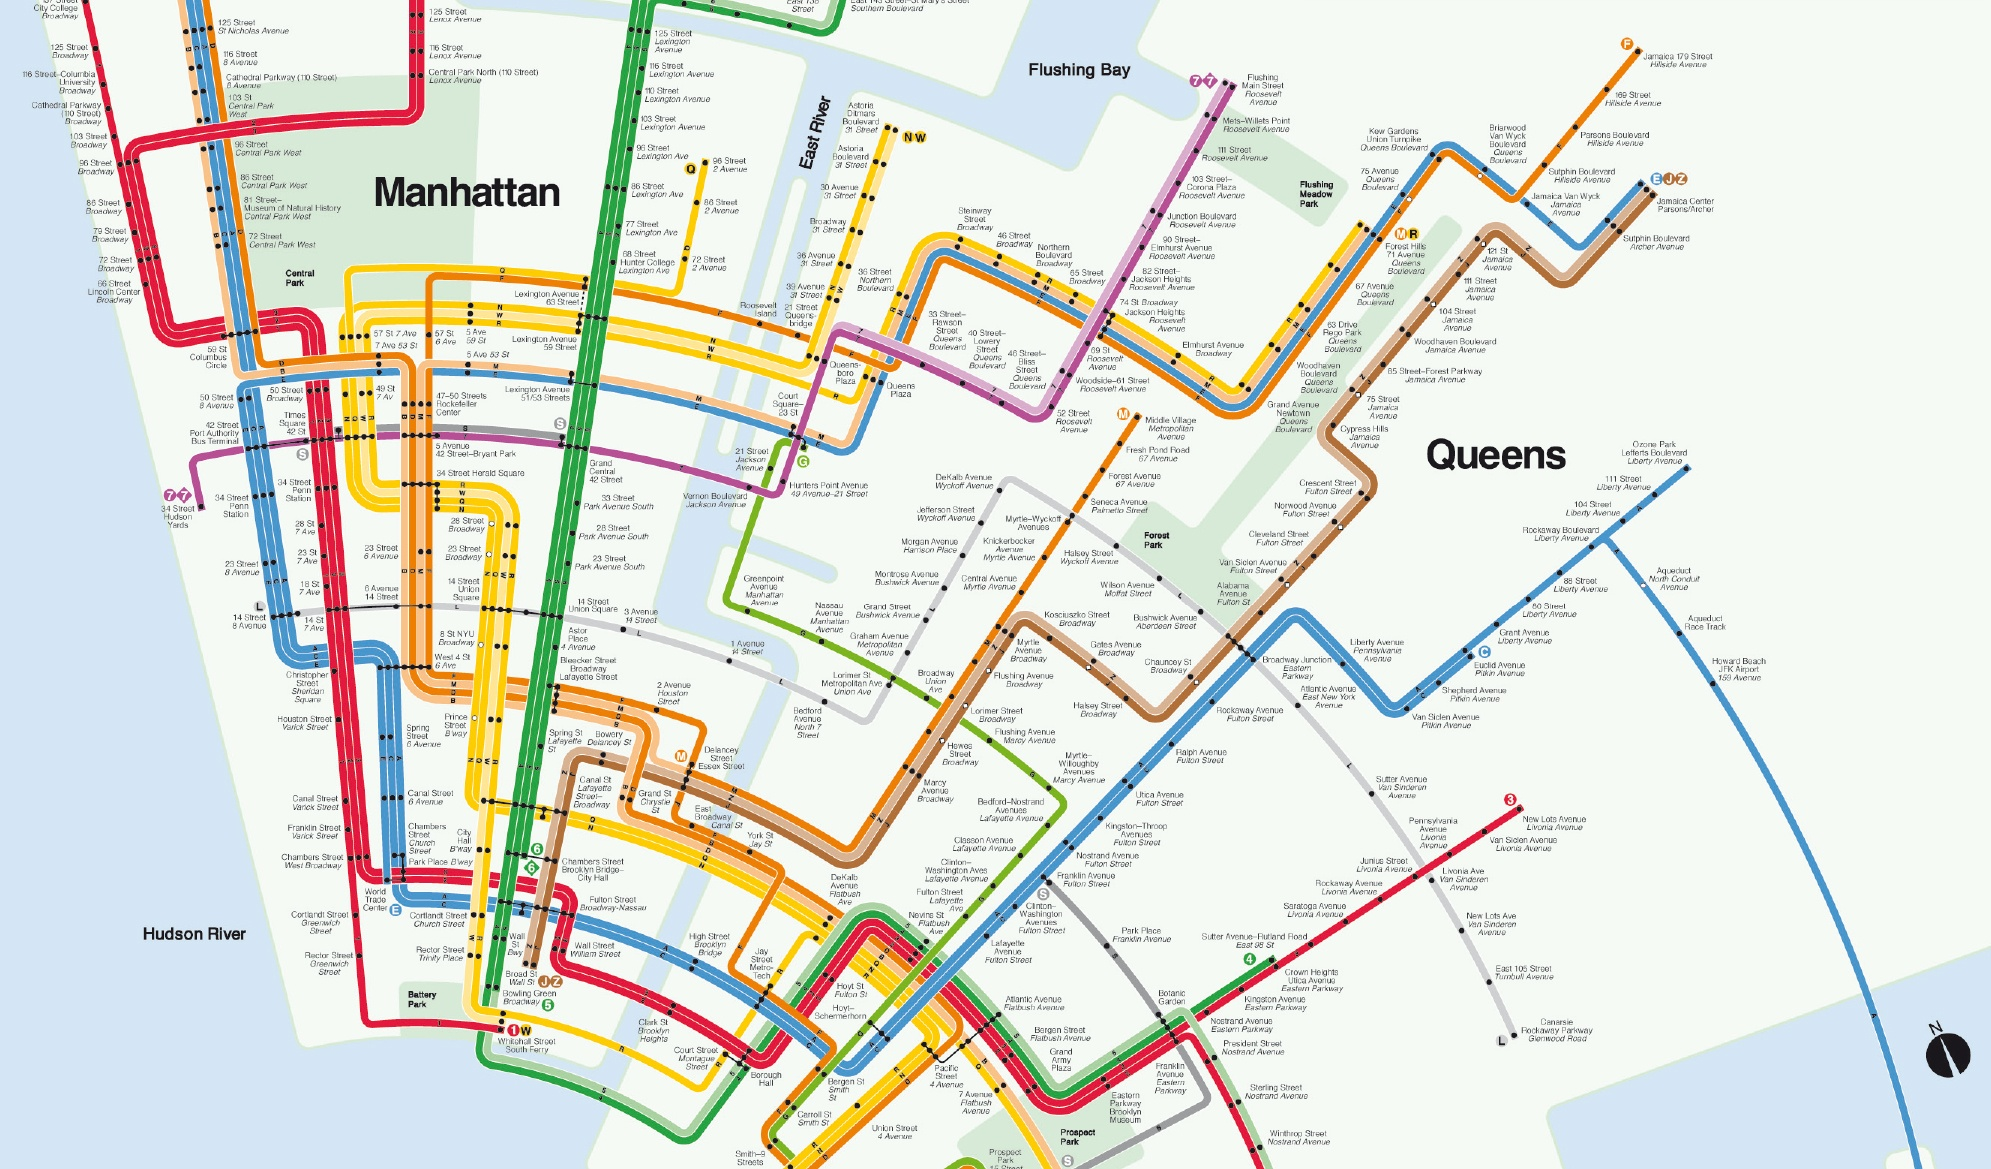 Nyc Subway Map Over Street Map.Artist Uses The Classic Vignelli Design To Reimagine The Nyc Subway